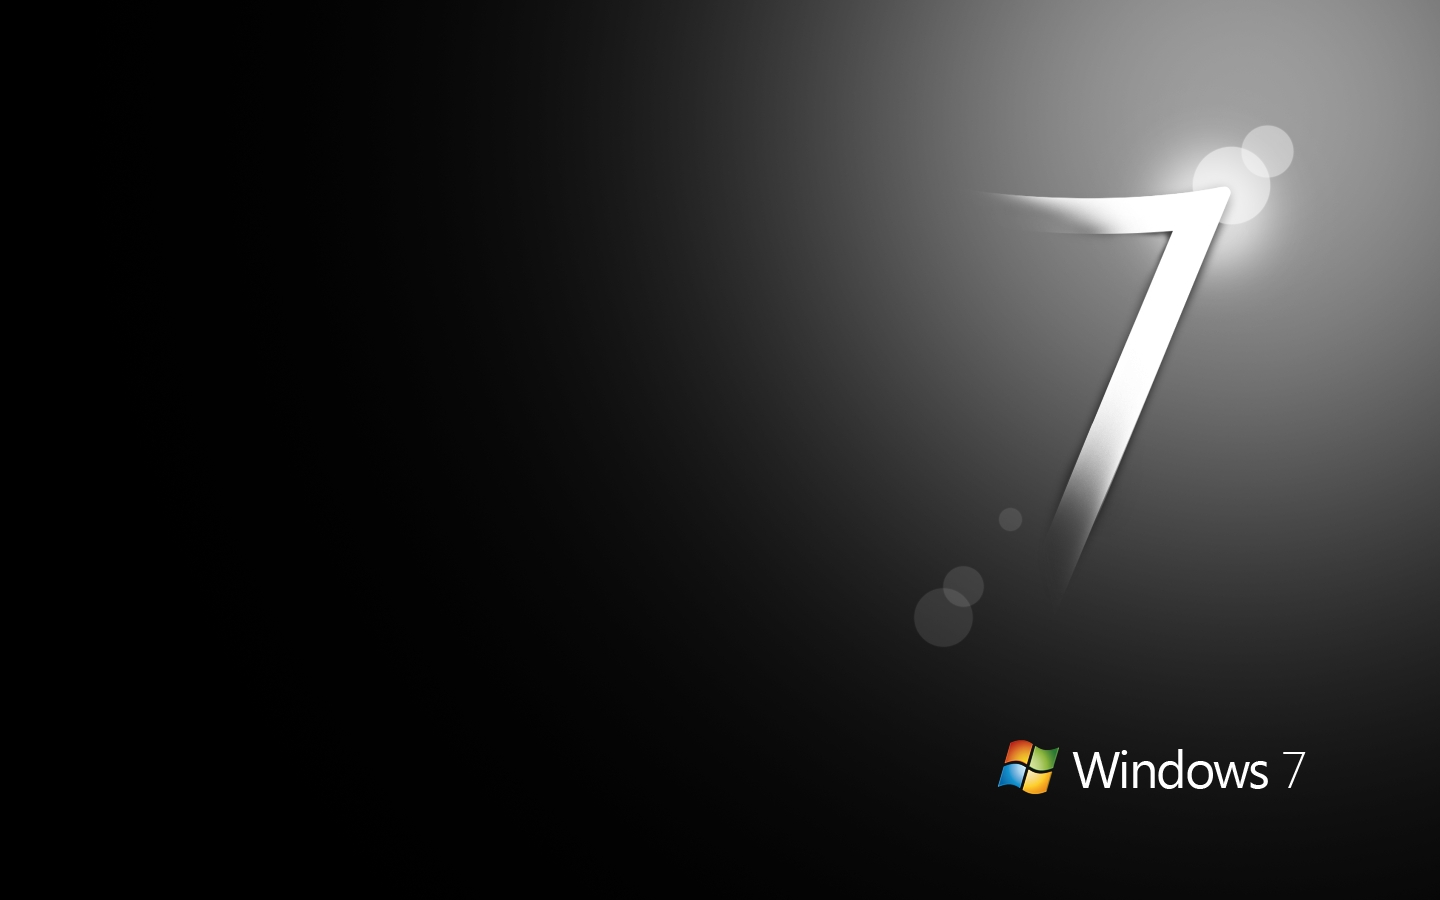 New Wallpaper Windows new wallpaper by